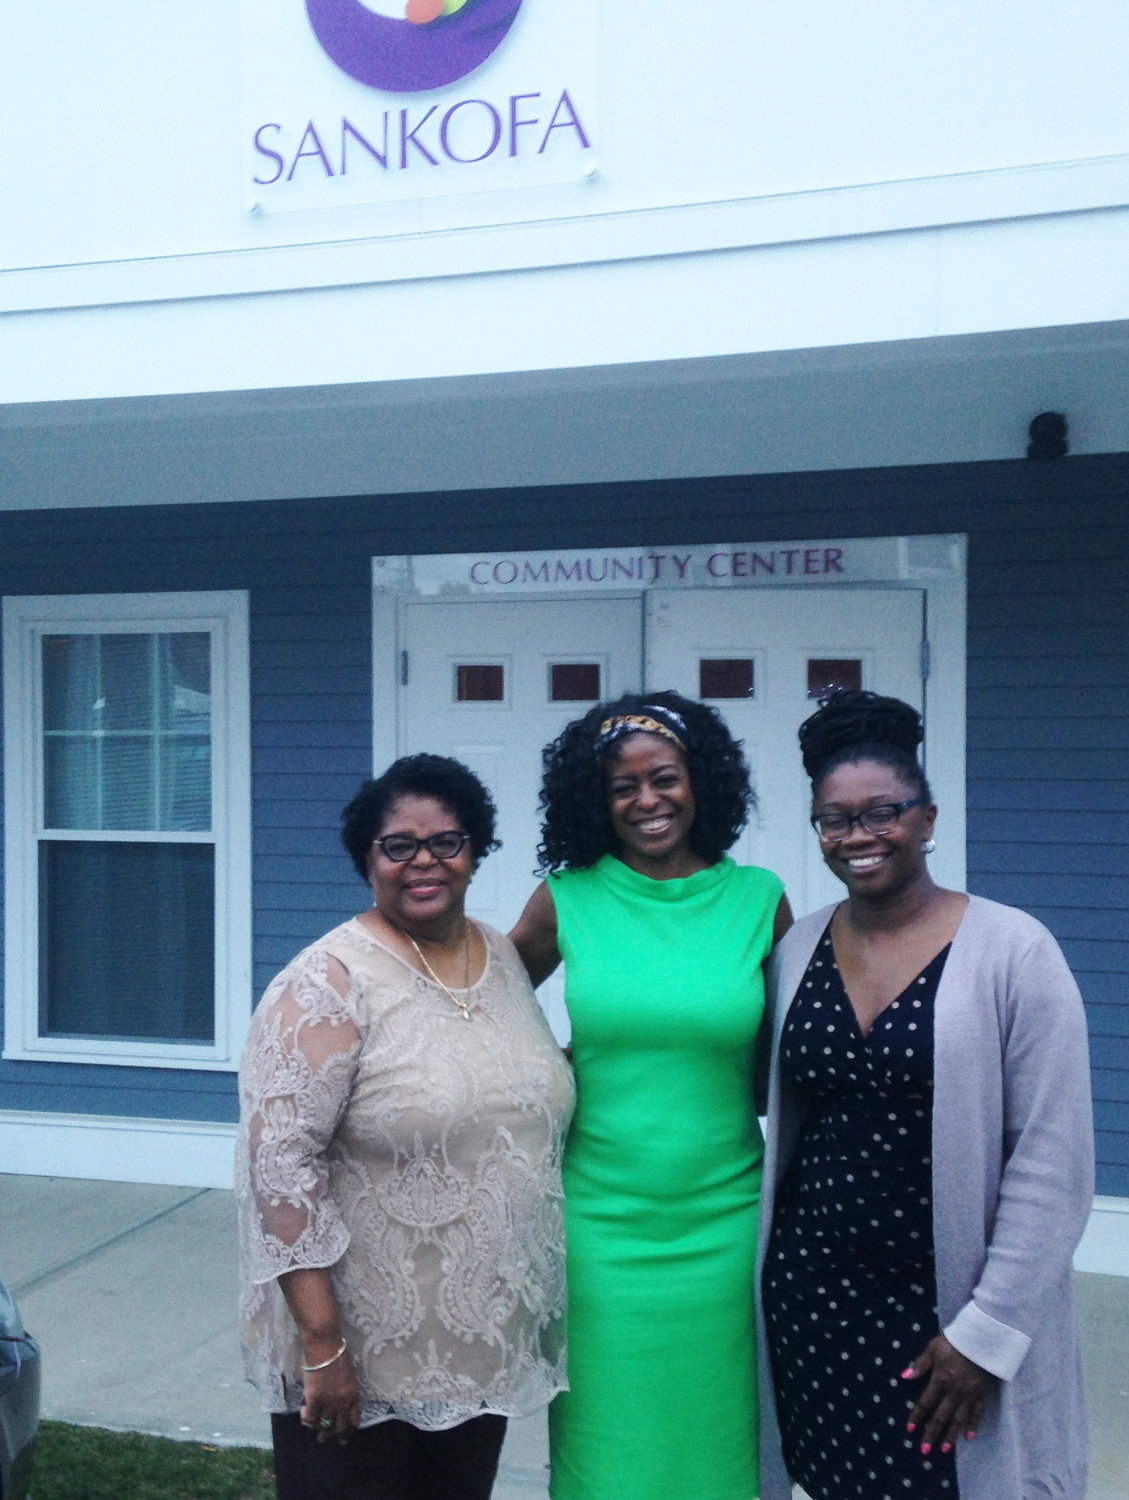 Sharon Conard-Wells, left, executive director of West Elmwood Housing Development Corporation, Gloria L. Johnson, center, West Elmwood board chair, and Angela Ankoma, right, at the Sankofa Eats! dinner on May 31.